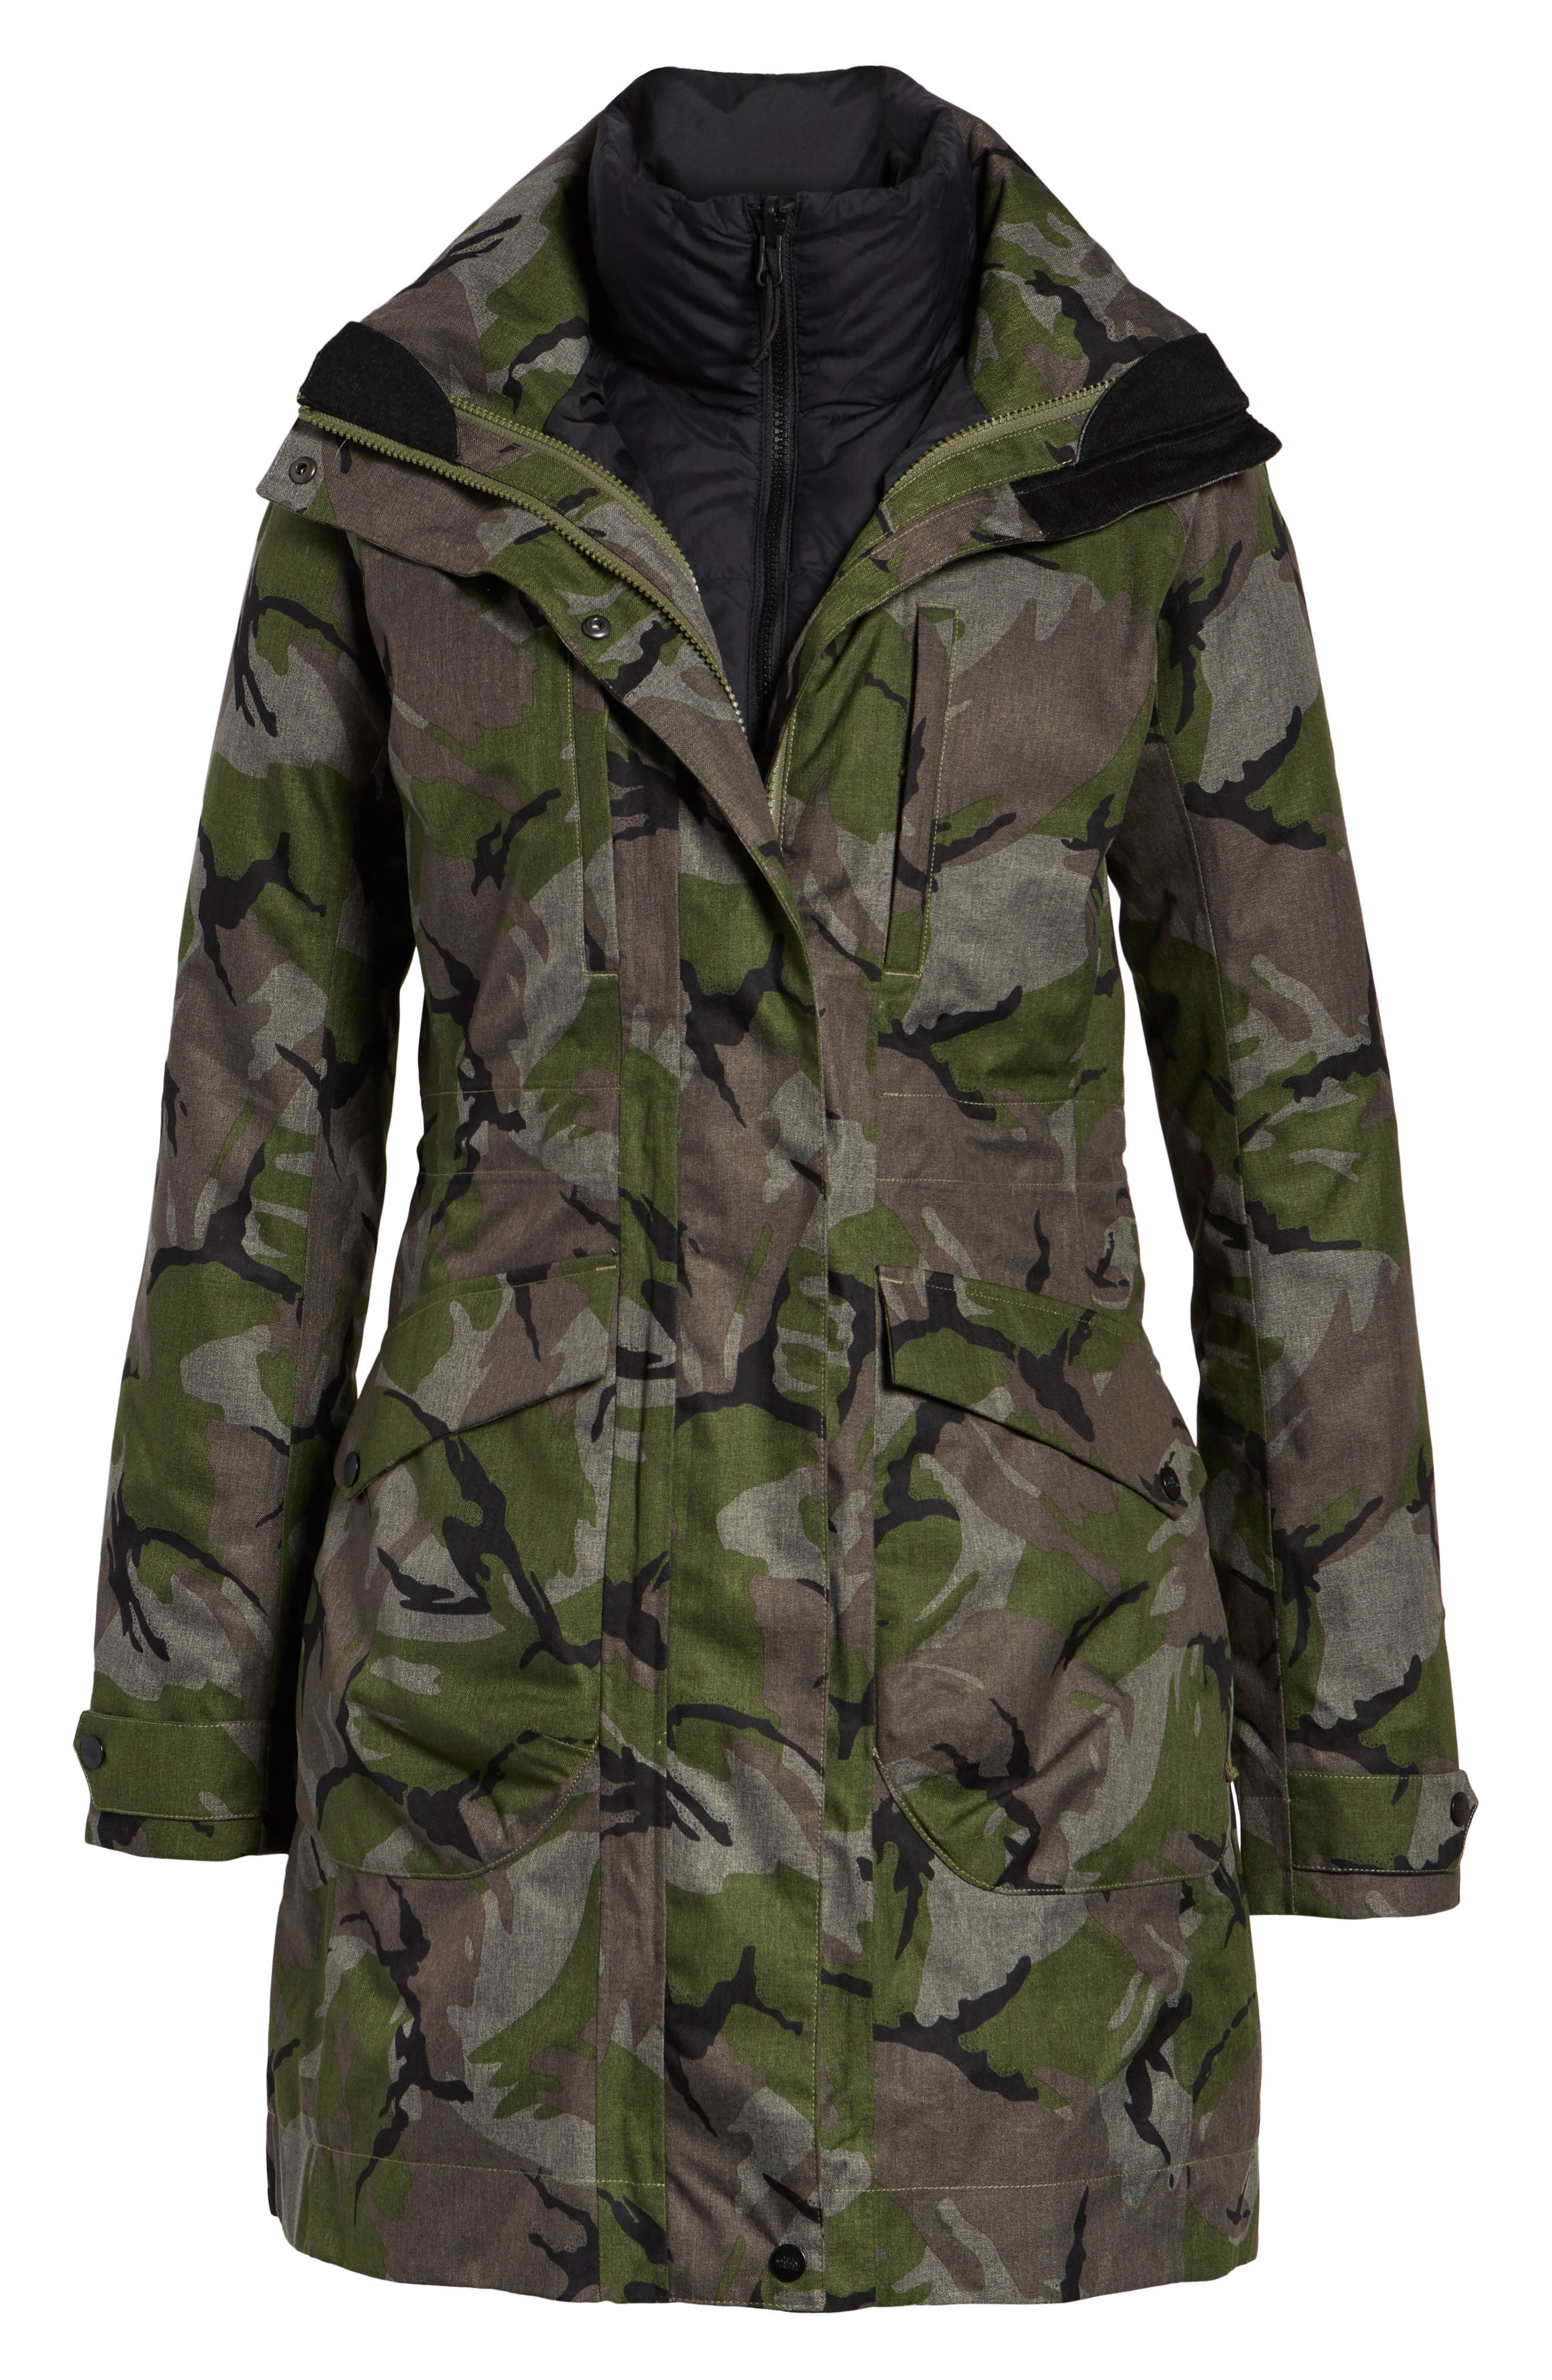 Outer Boroughs 3-in-1 TriClimate<sup>®</sup> Waterproof Jacket with Faux Fur Trim,                             Alternate thumbnail 7, color,                             Burnt Olive Green Disrupt Camo